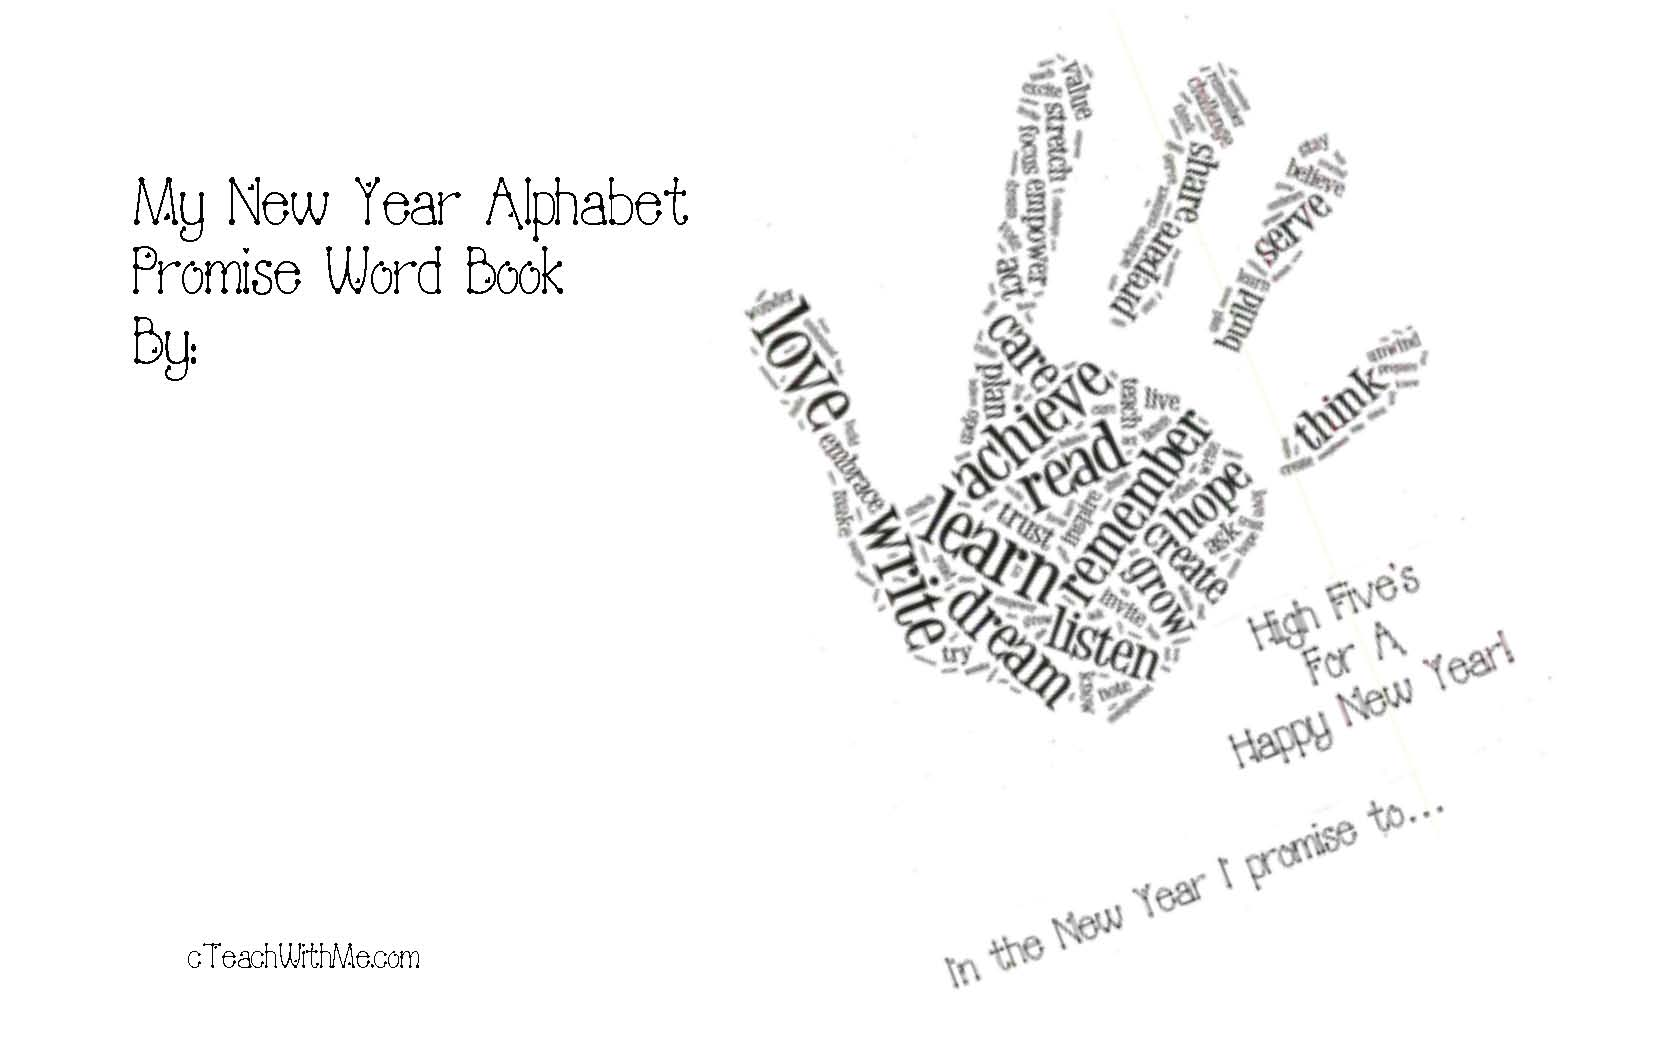 word art, New Year's lessons, New Year writing prompts, January writing prompts, January bulletin board ideas, Daily 5 activities for January, Daily 5 word work activities, verb activities, free posters for the classroom, verbs, alphabetizing activities, New Year's words, resolutions,